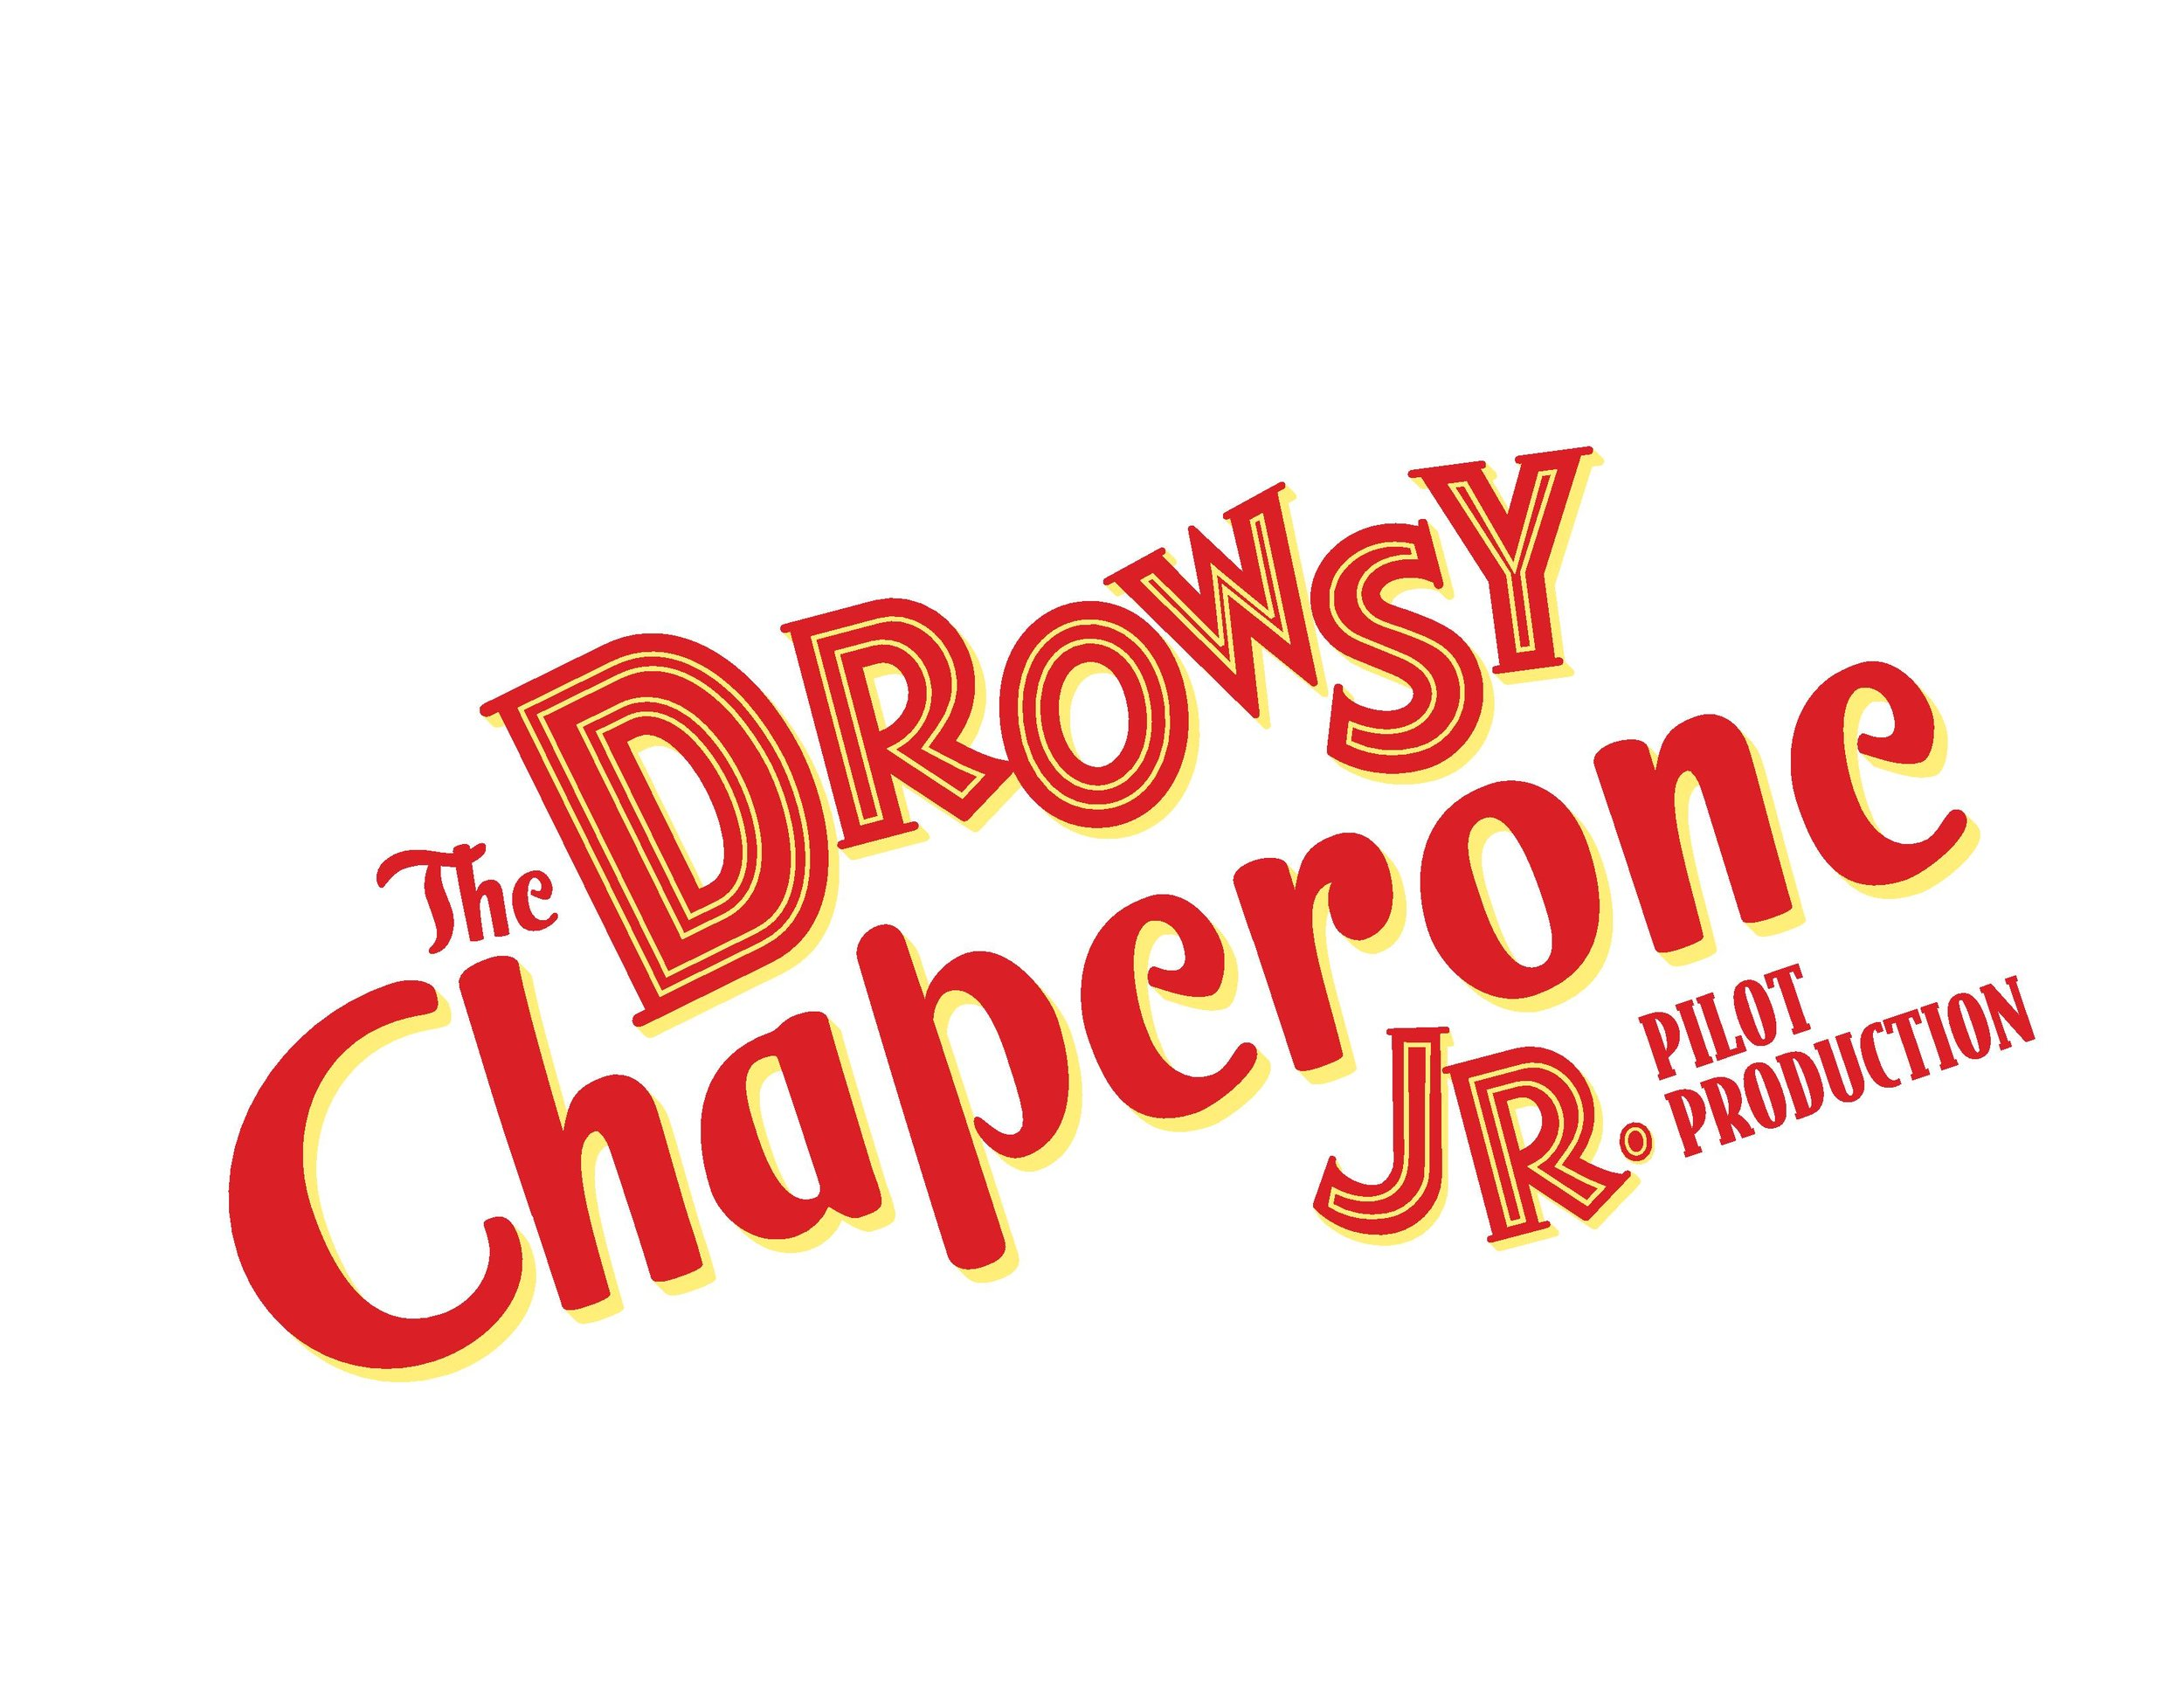 Drowsy JR Pilot Production Title Treatments-page-001.jpg